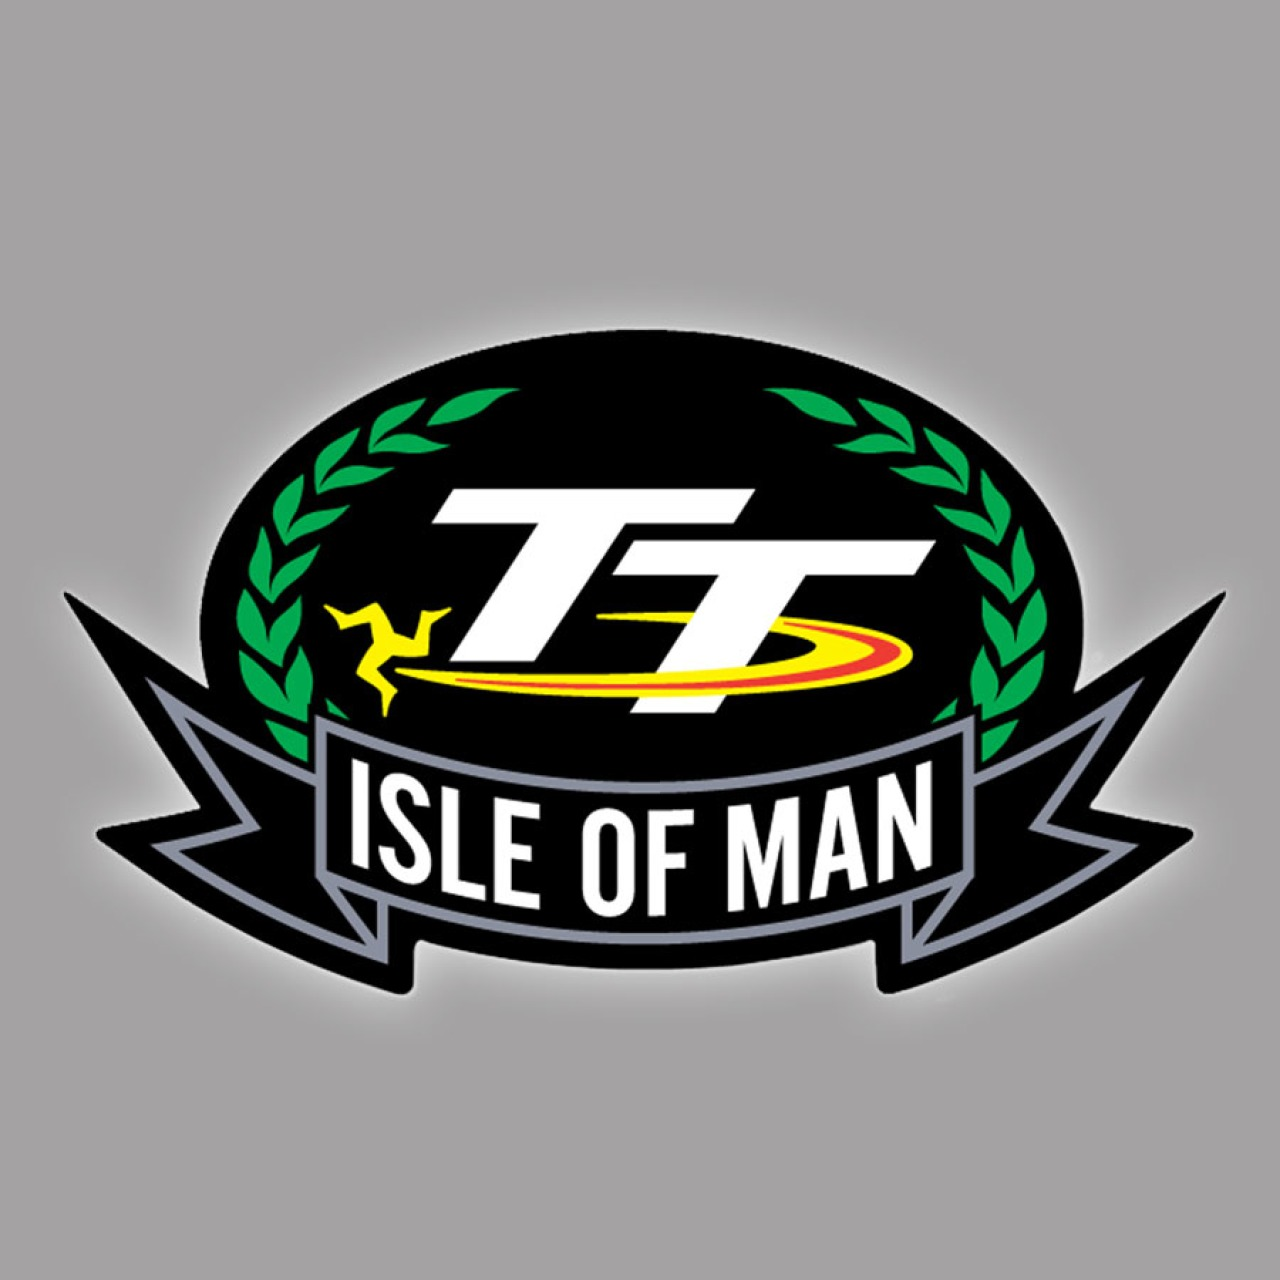 official isle of man tt tt green laurels patch 16patch4 patches